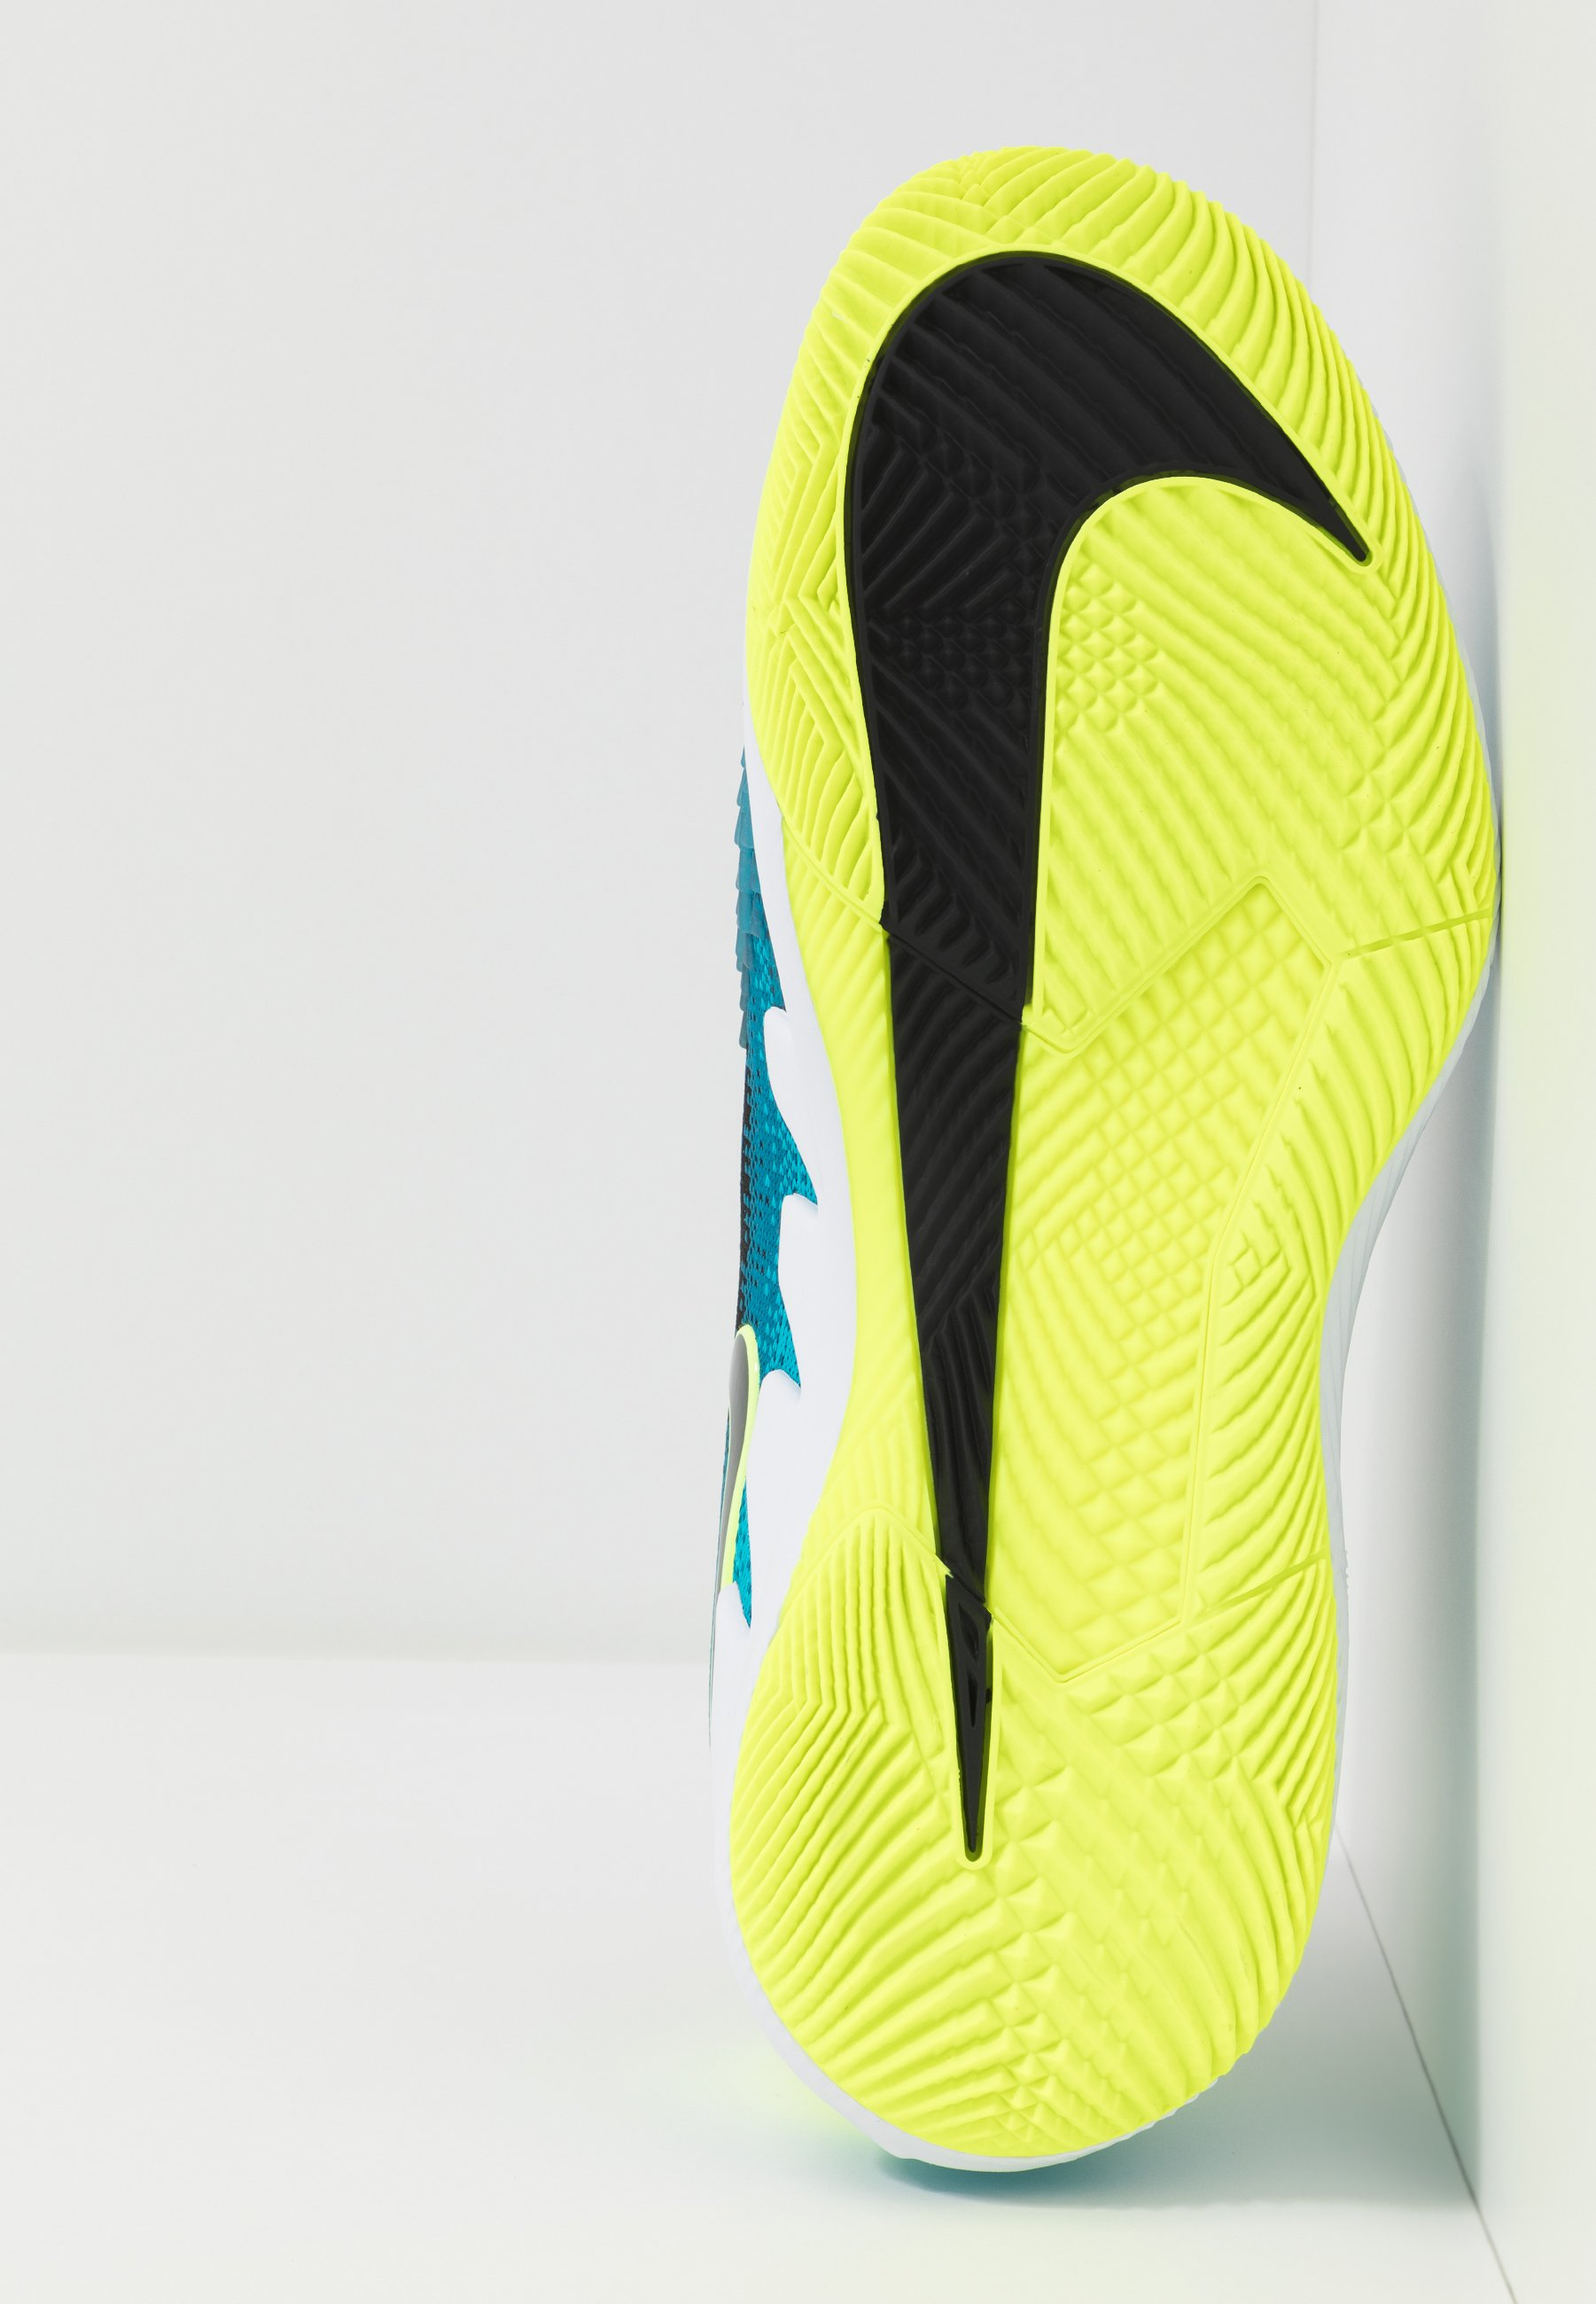 Nike Performance Air Zoom Vapor X - Tennissko Til Multicourt Neo Turquoise/black/green/hot Lime